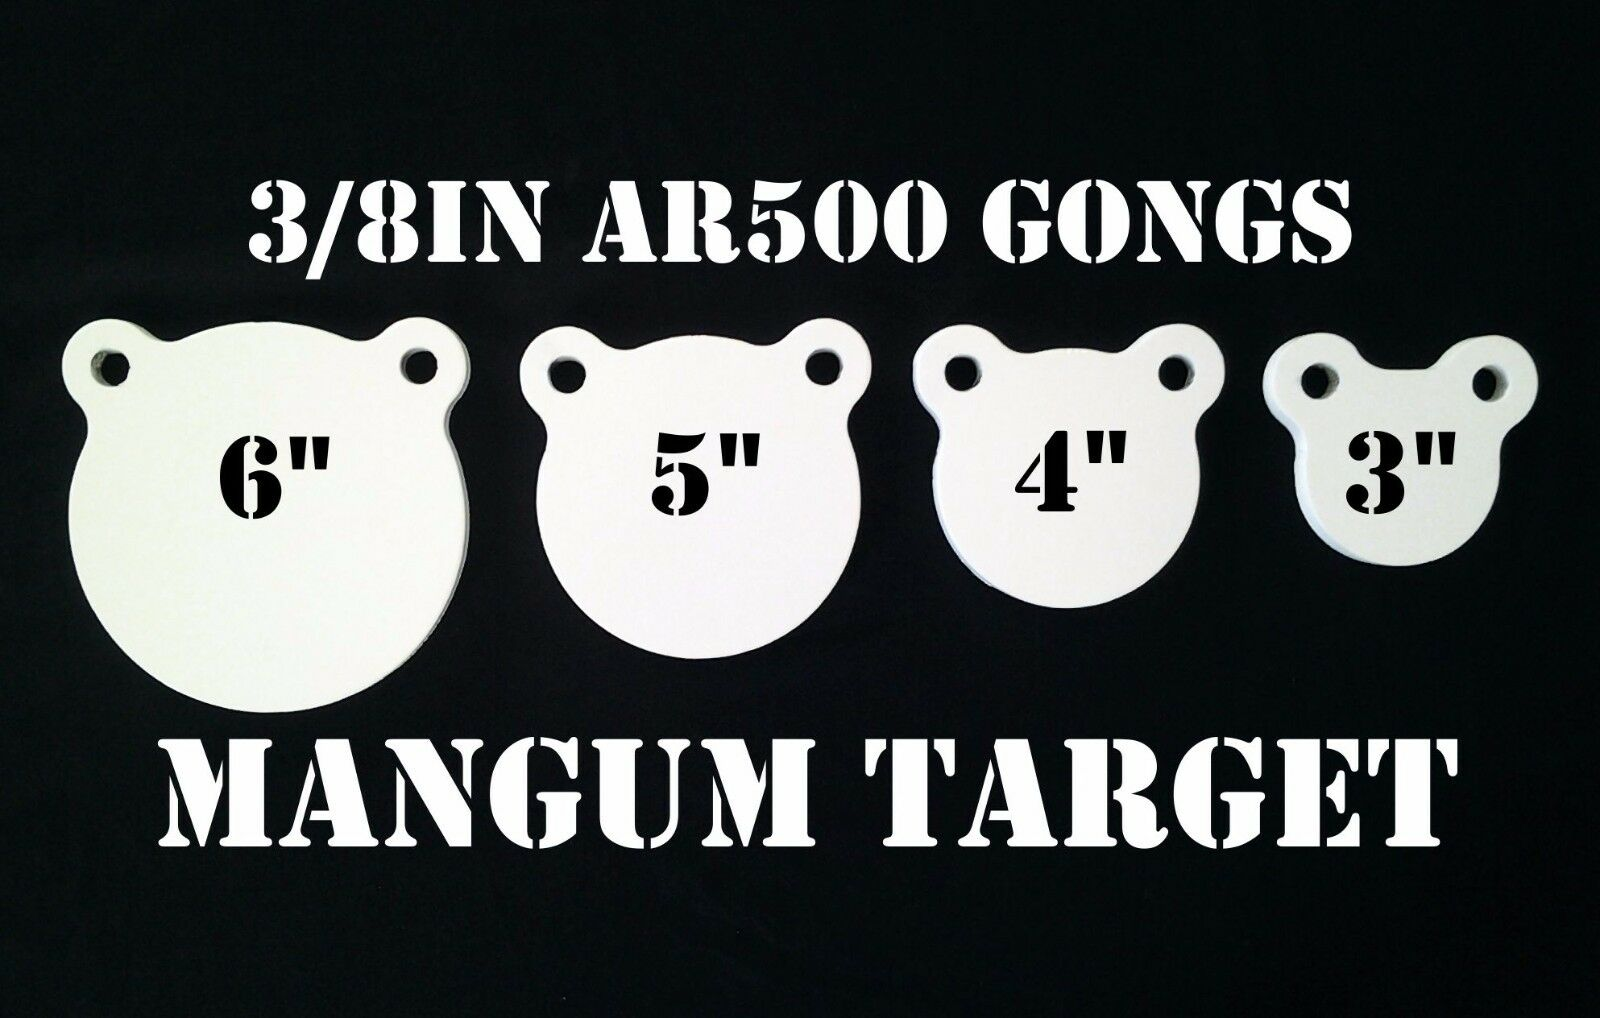 3,4,5&6in. AR500 Gong Shooting Targets - 3 8in.Rifle Targets - 4pc Steel Targets